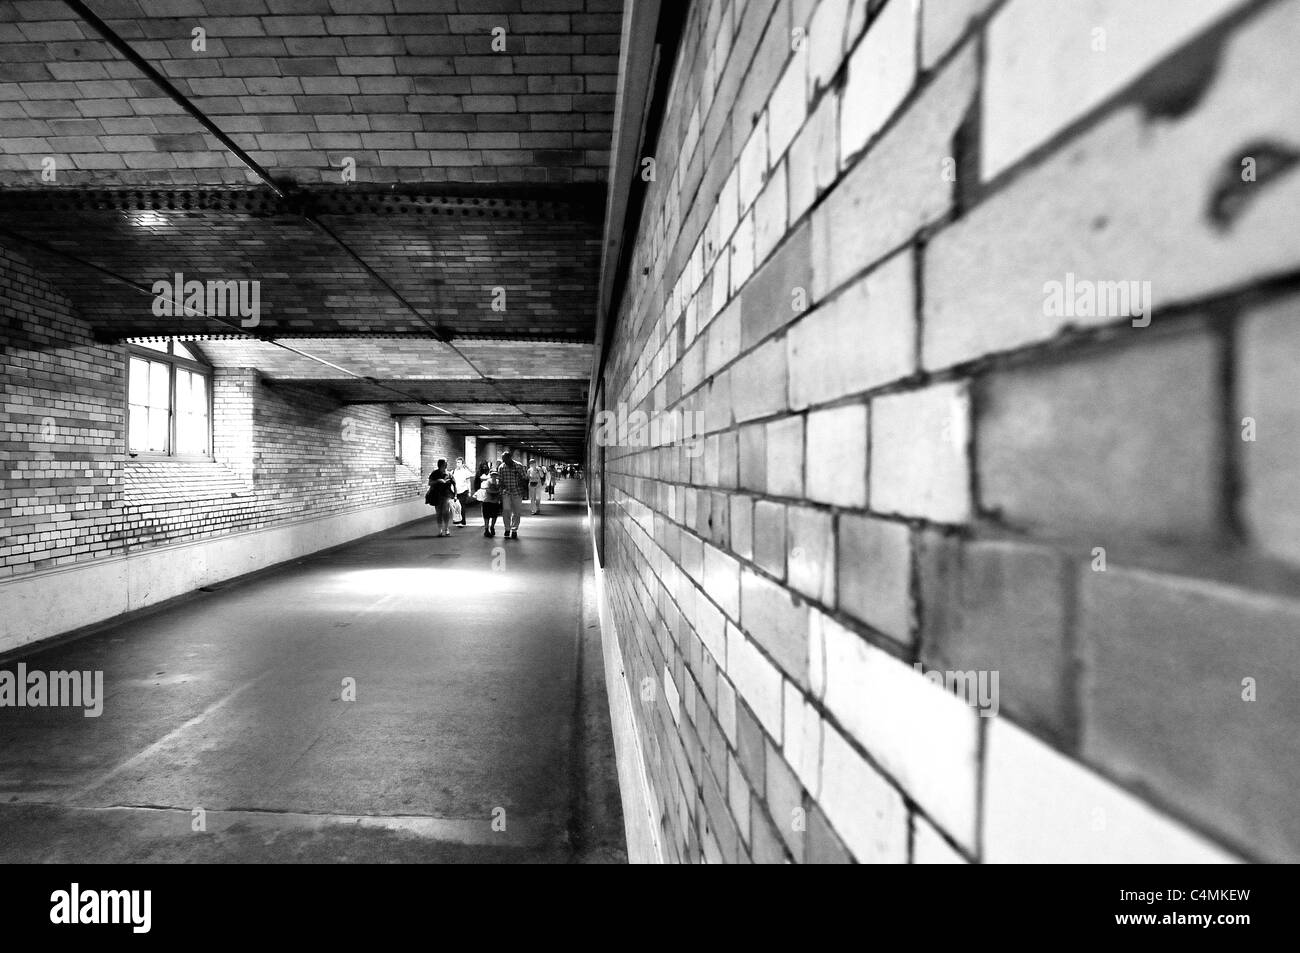 People walk through the underpass at South Kensington station - Stock Image